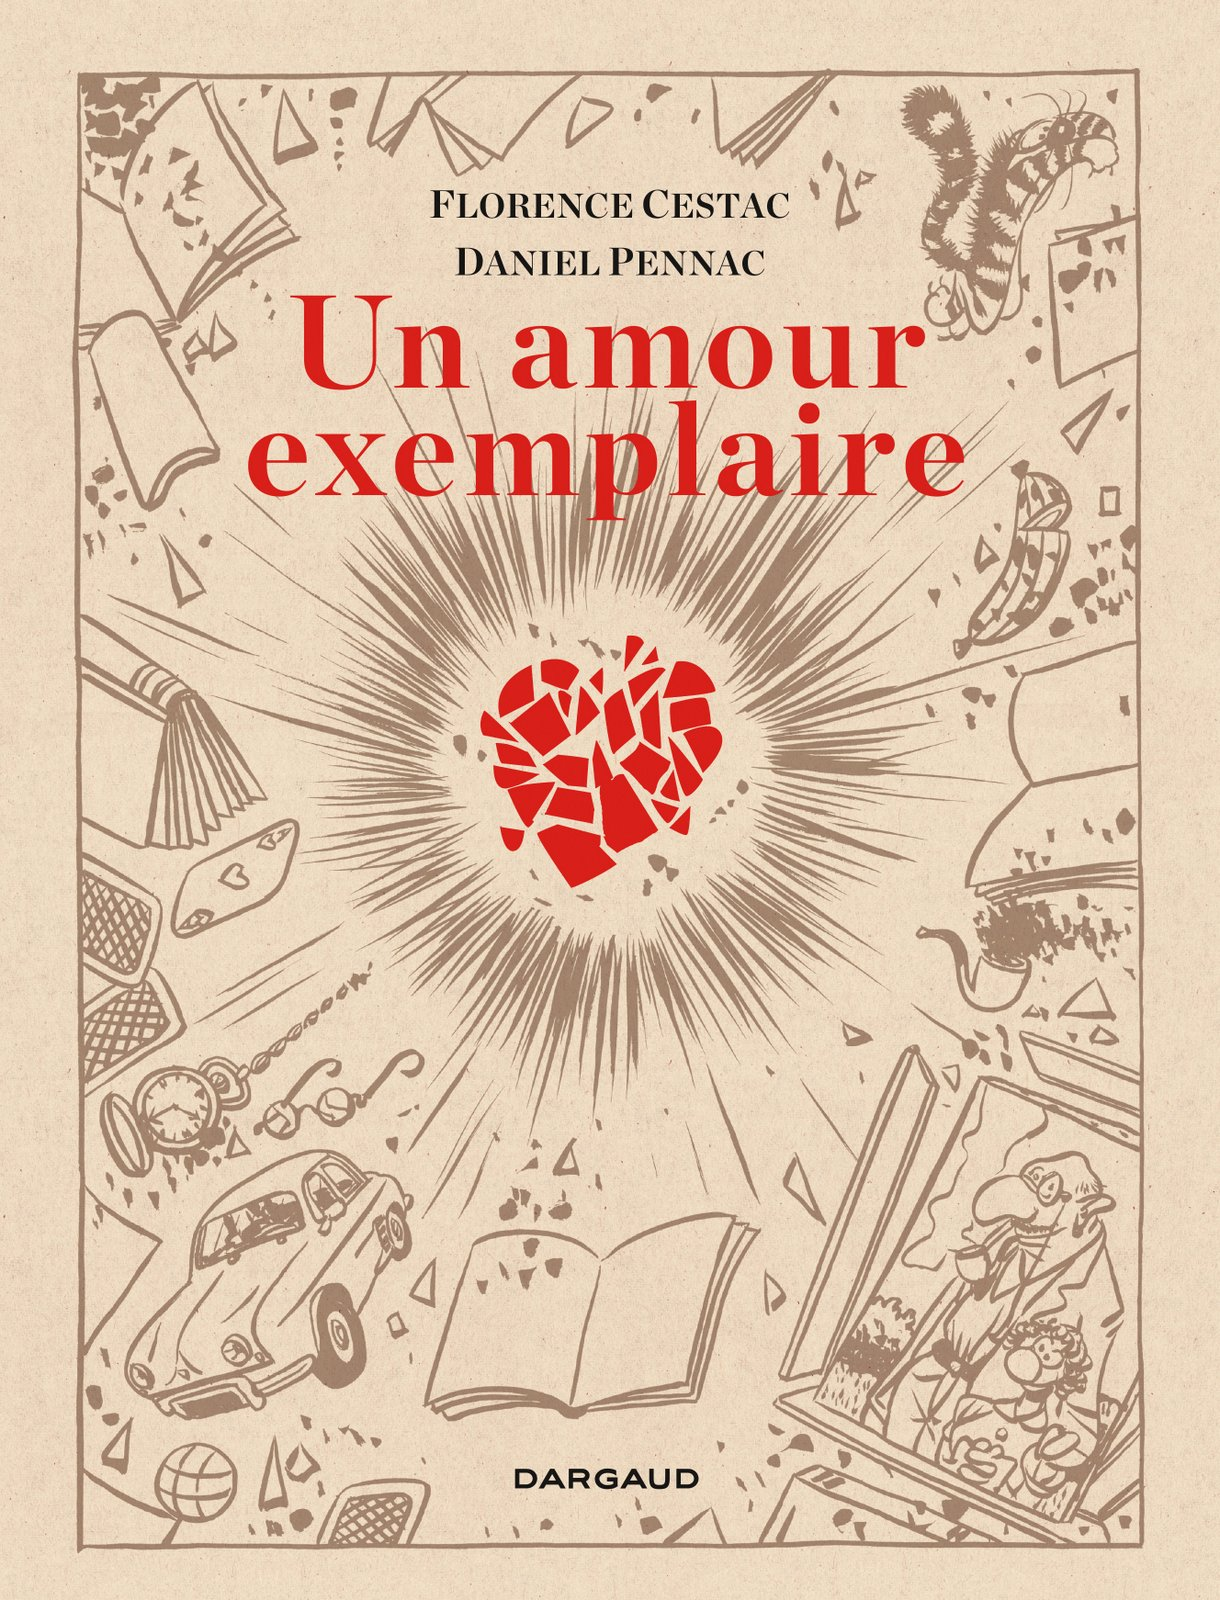 CV_AMOUR-EXEMPLAIRE.indd